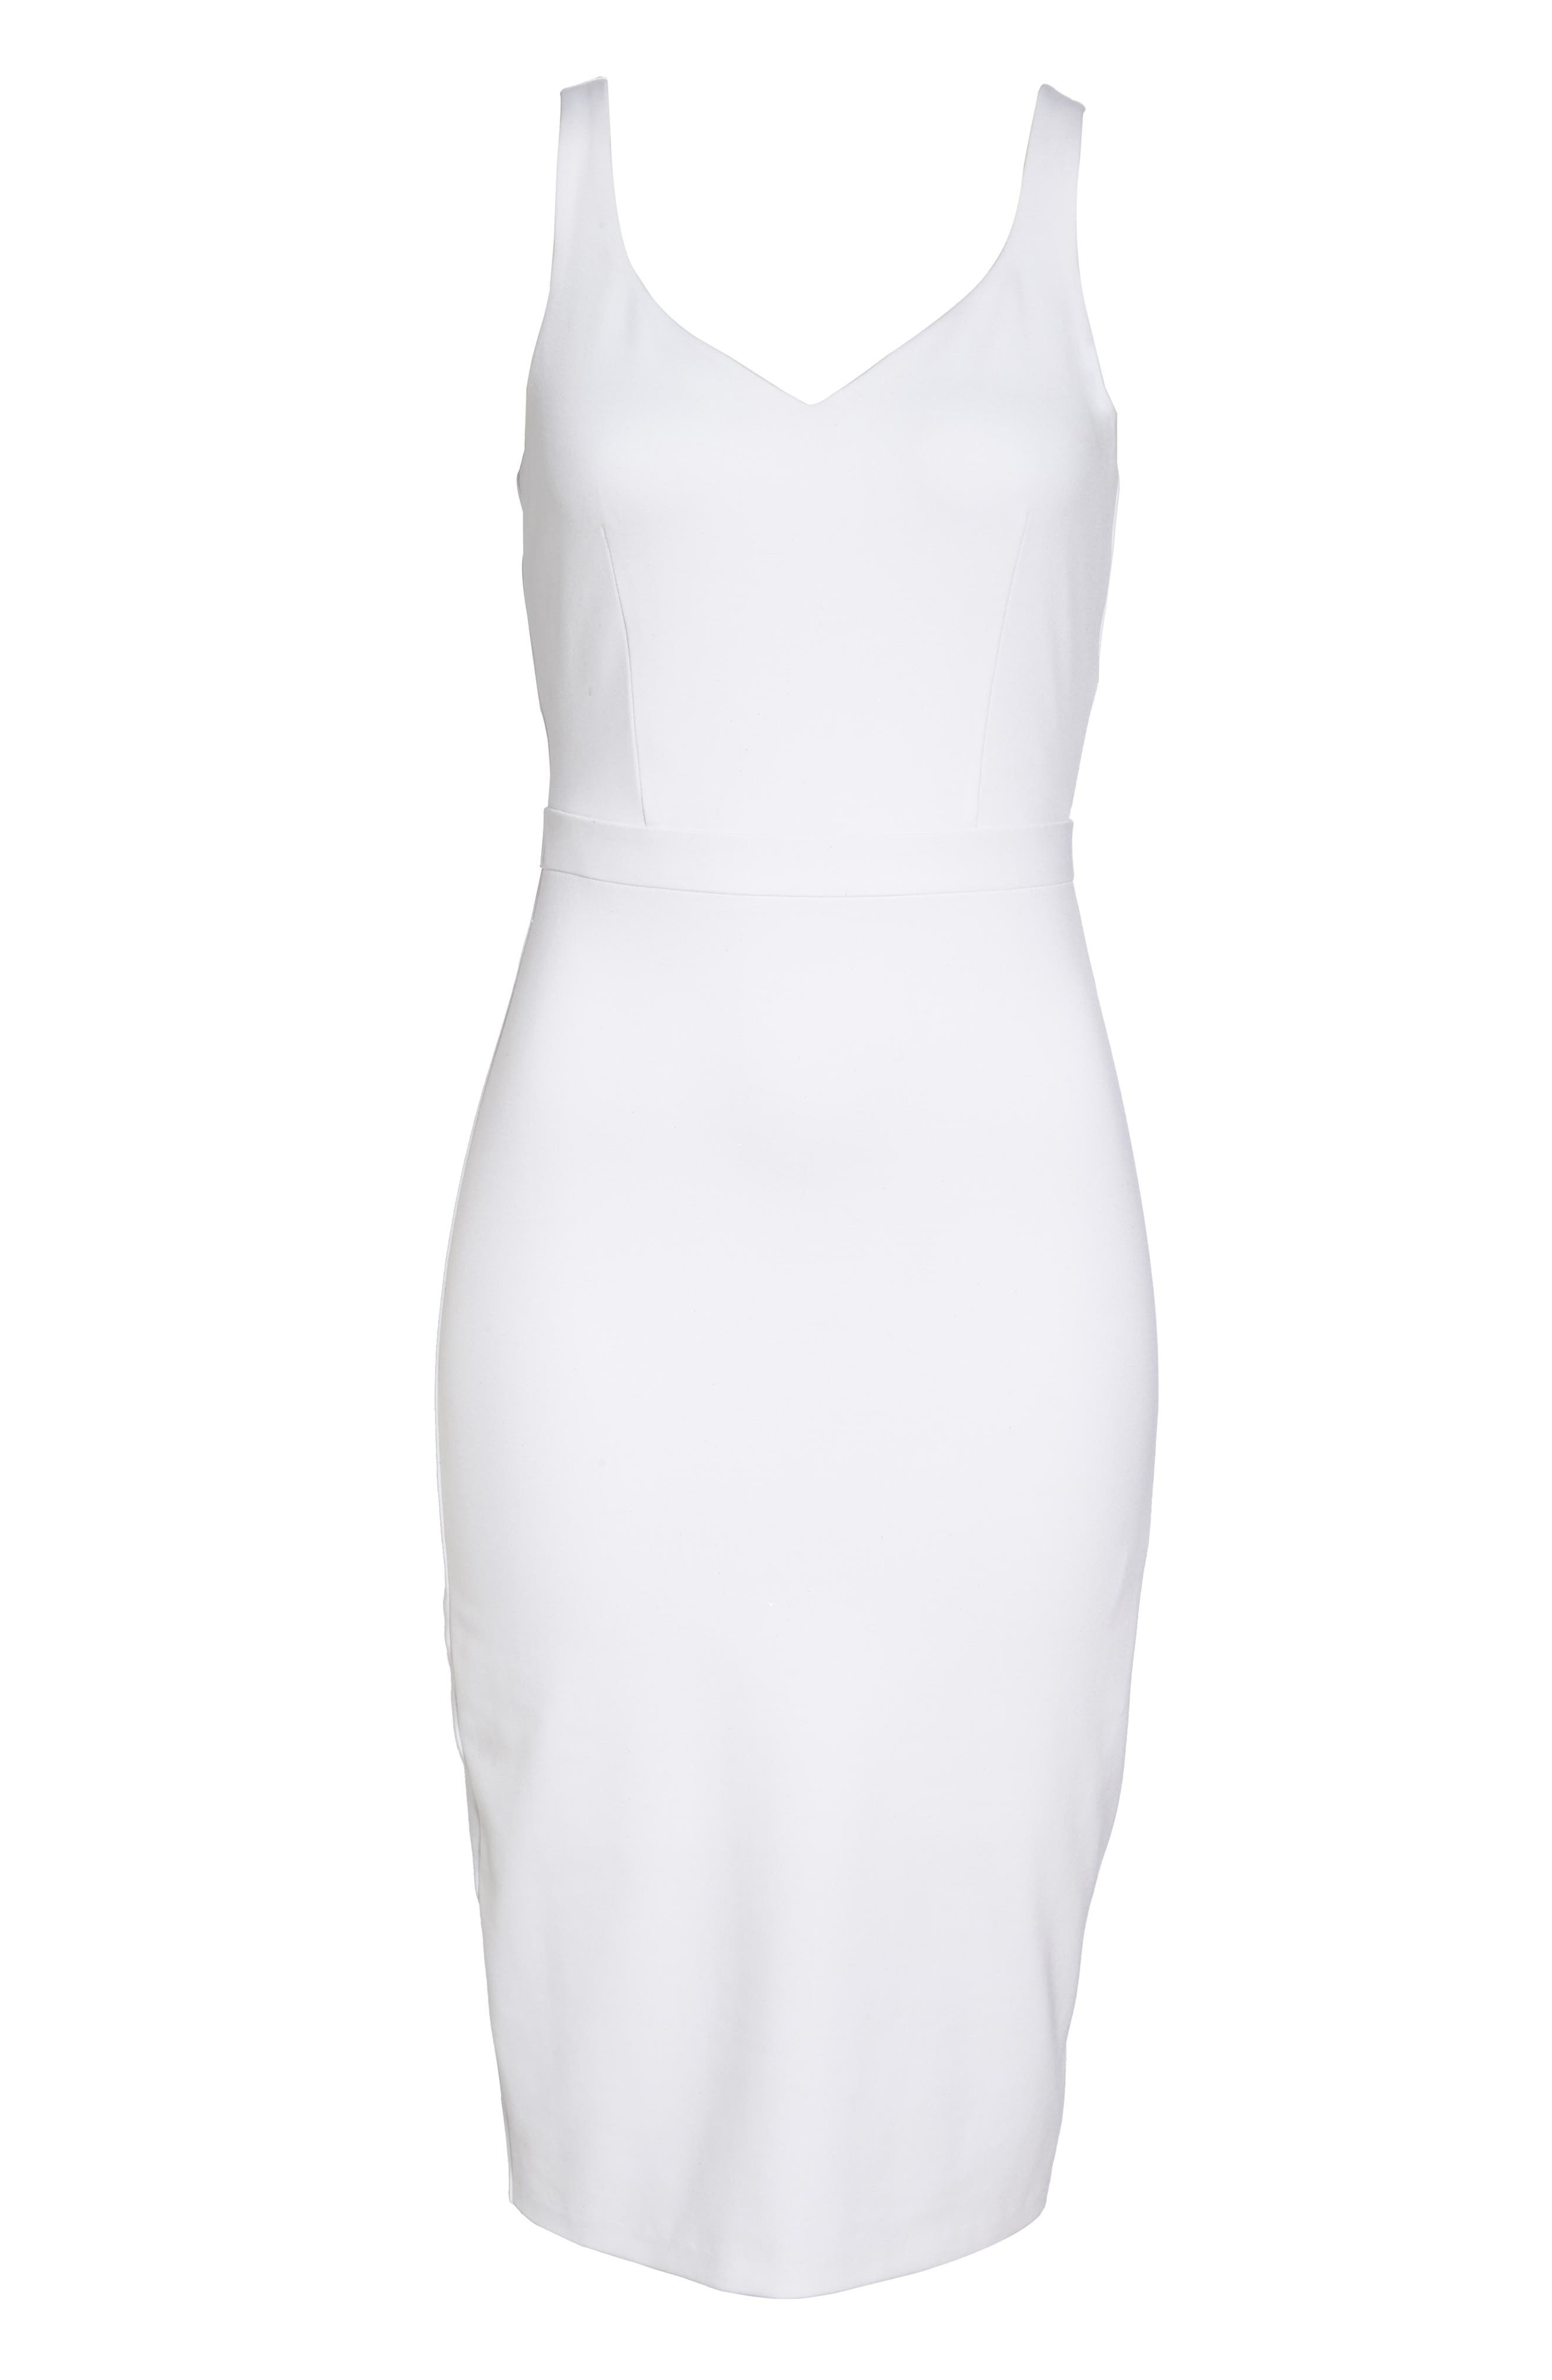 First Date Sheath Dress,                             Alternate thumbnail 7, color,                             White